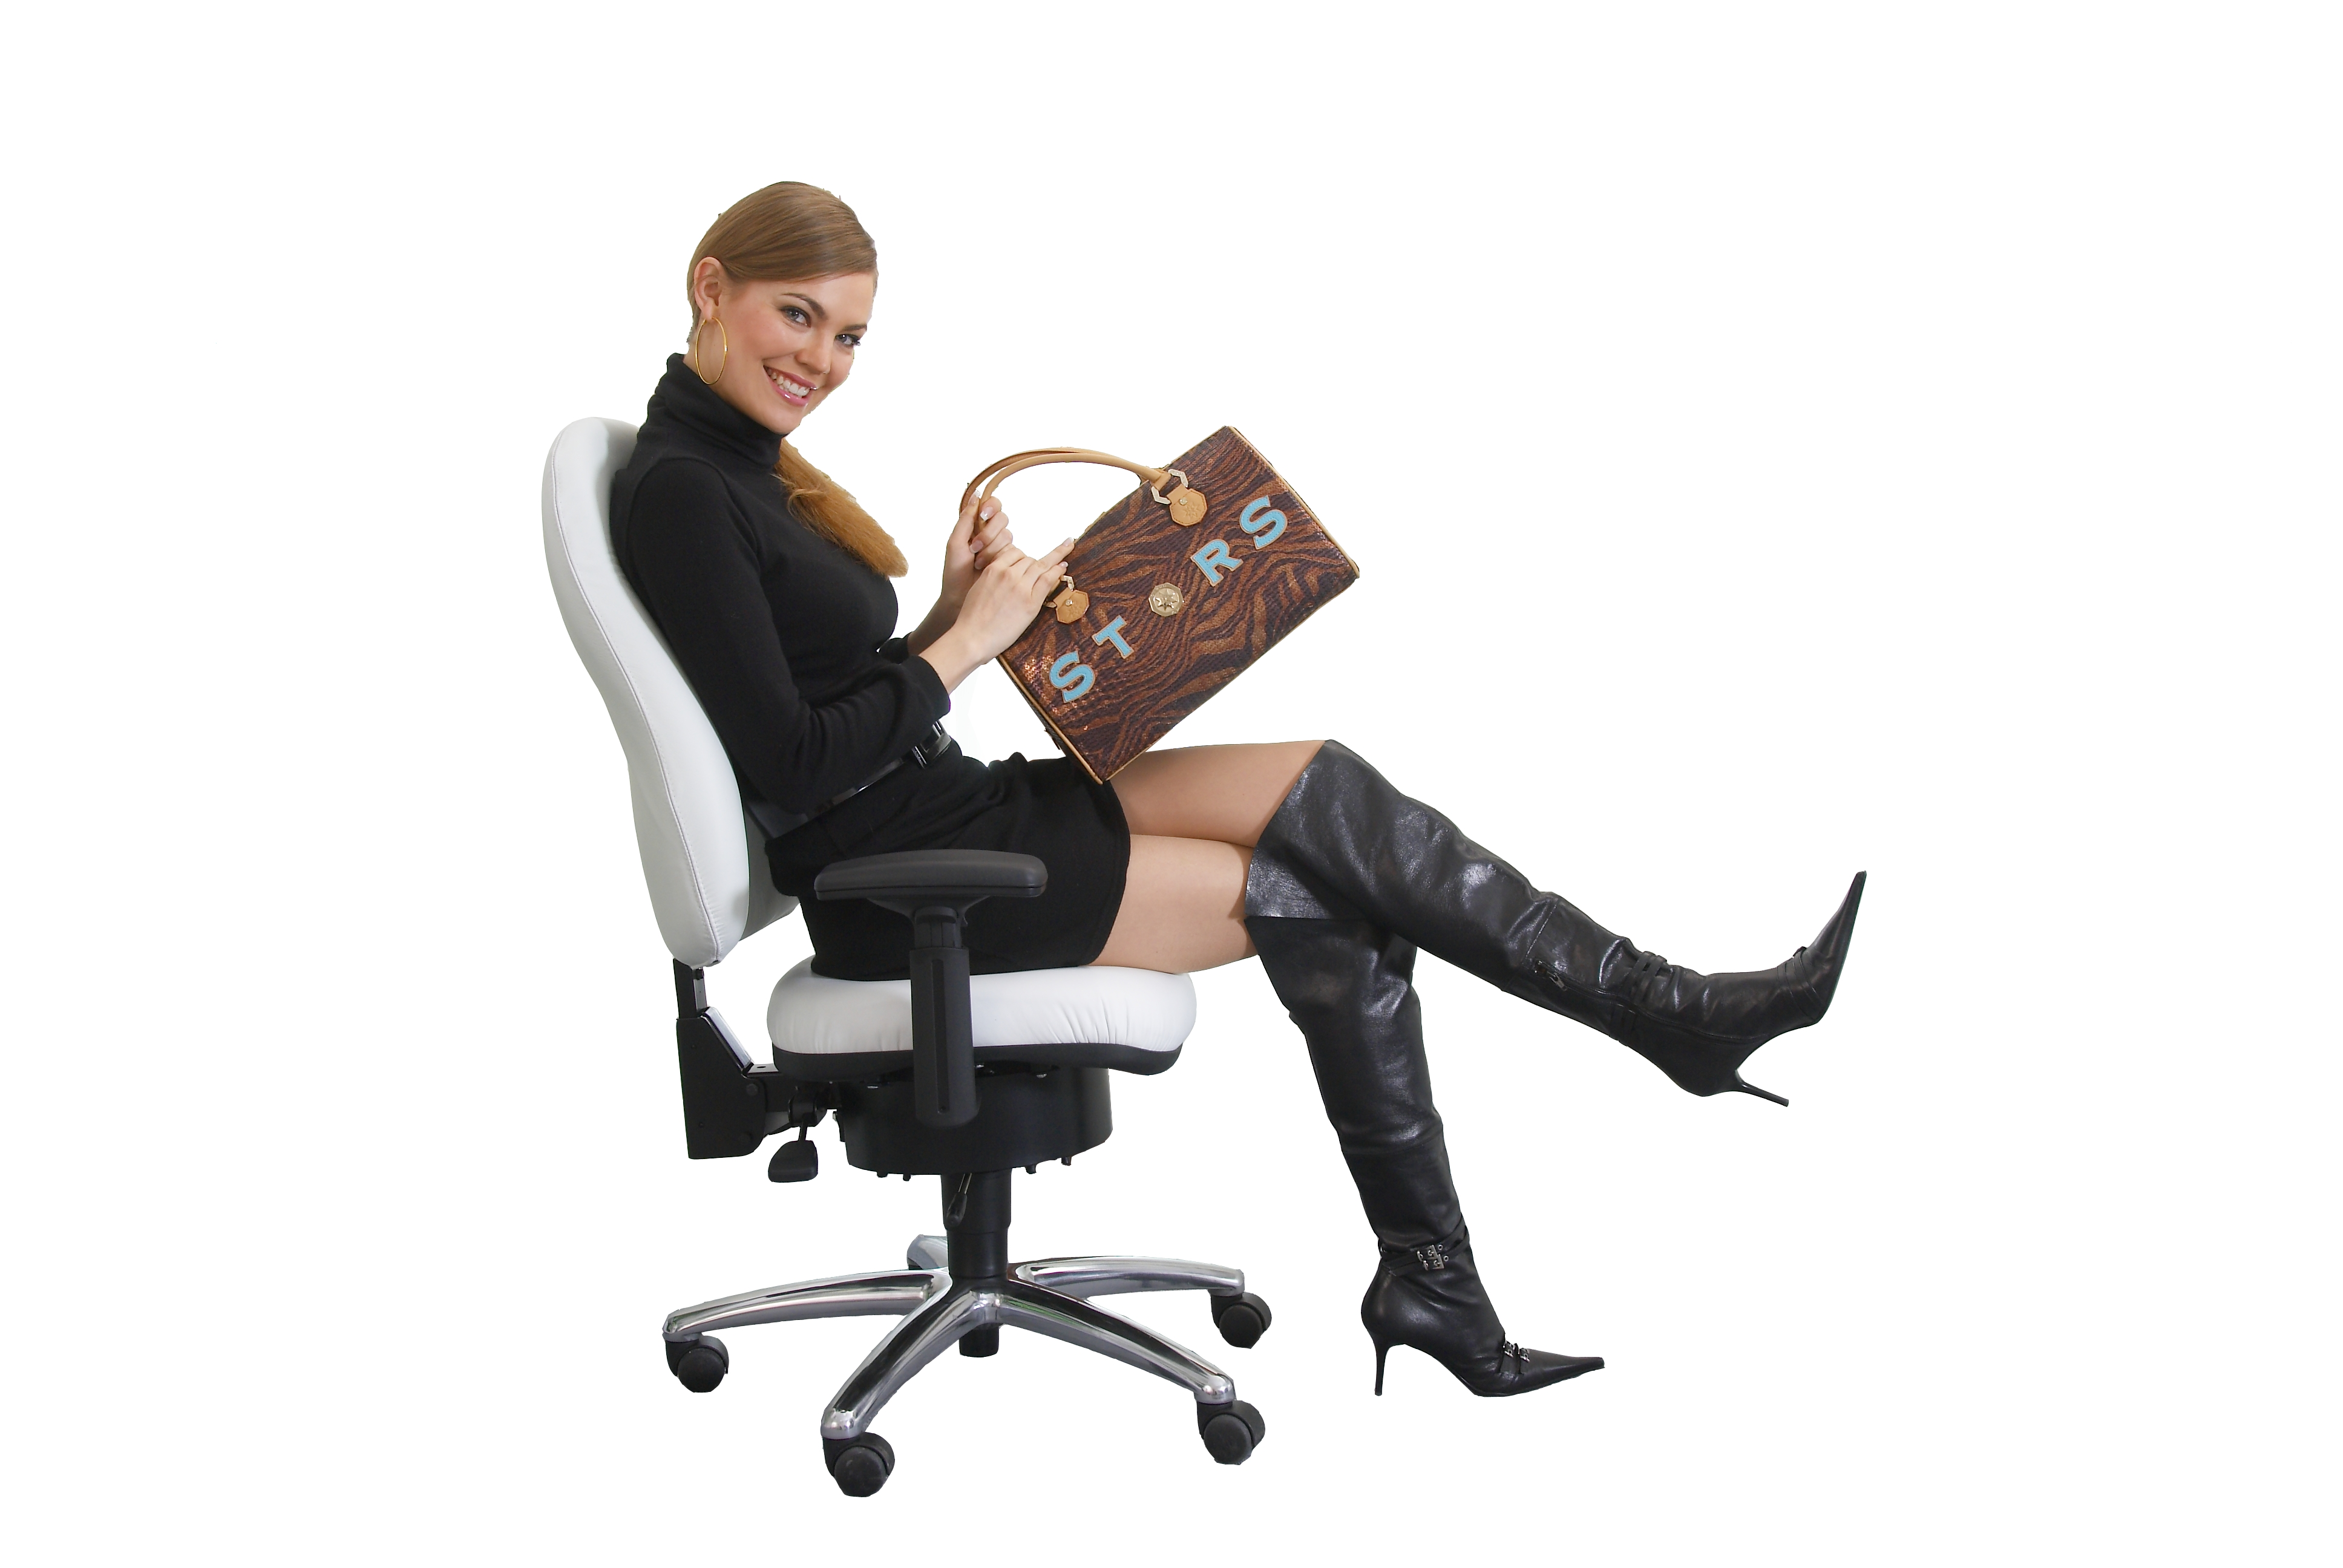 The Secret of healthy sitting - Gender Seating is the new ...